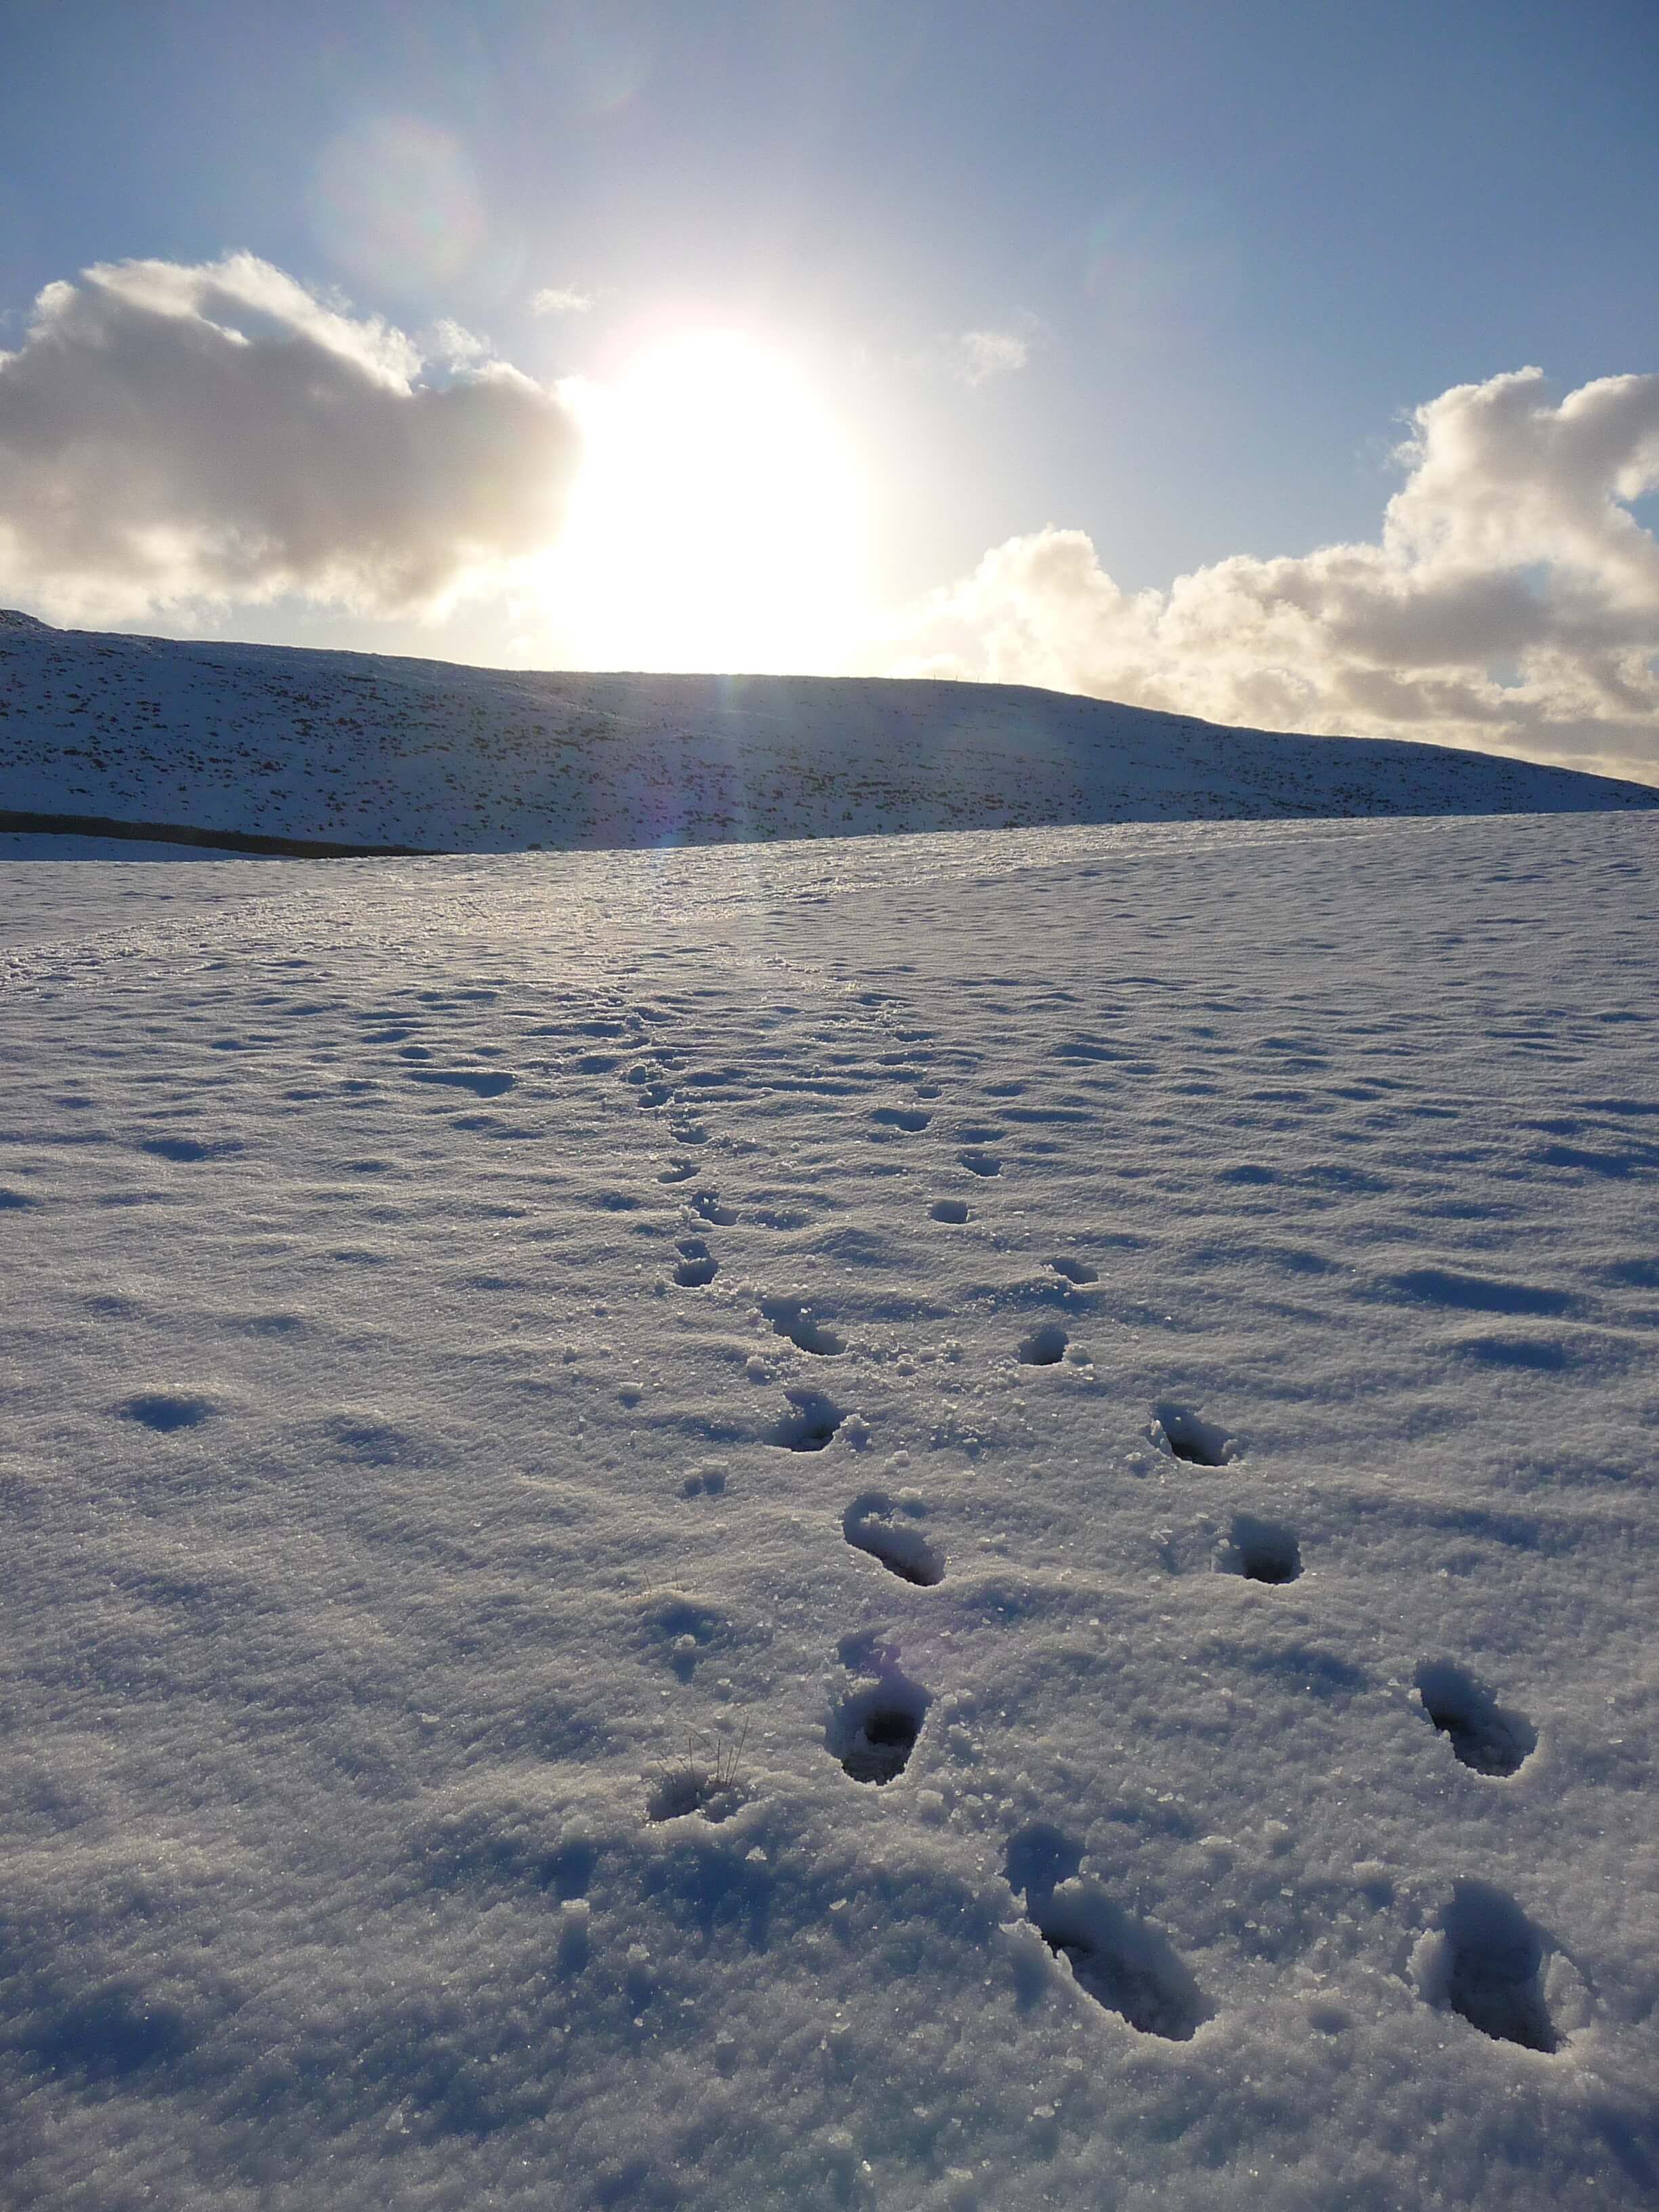 Snowy field near the tower, Firth, Orkney Islands, Scotland